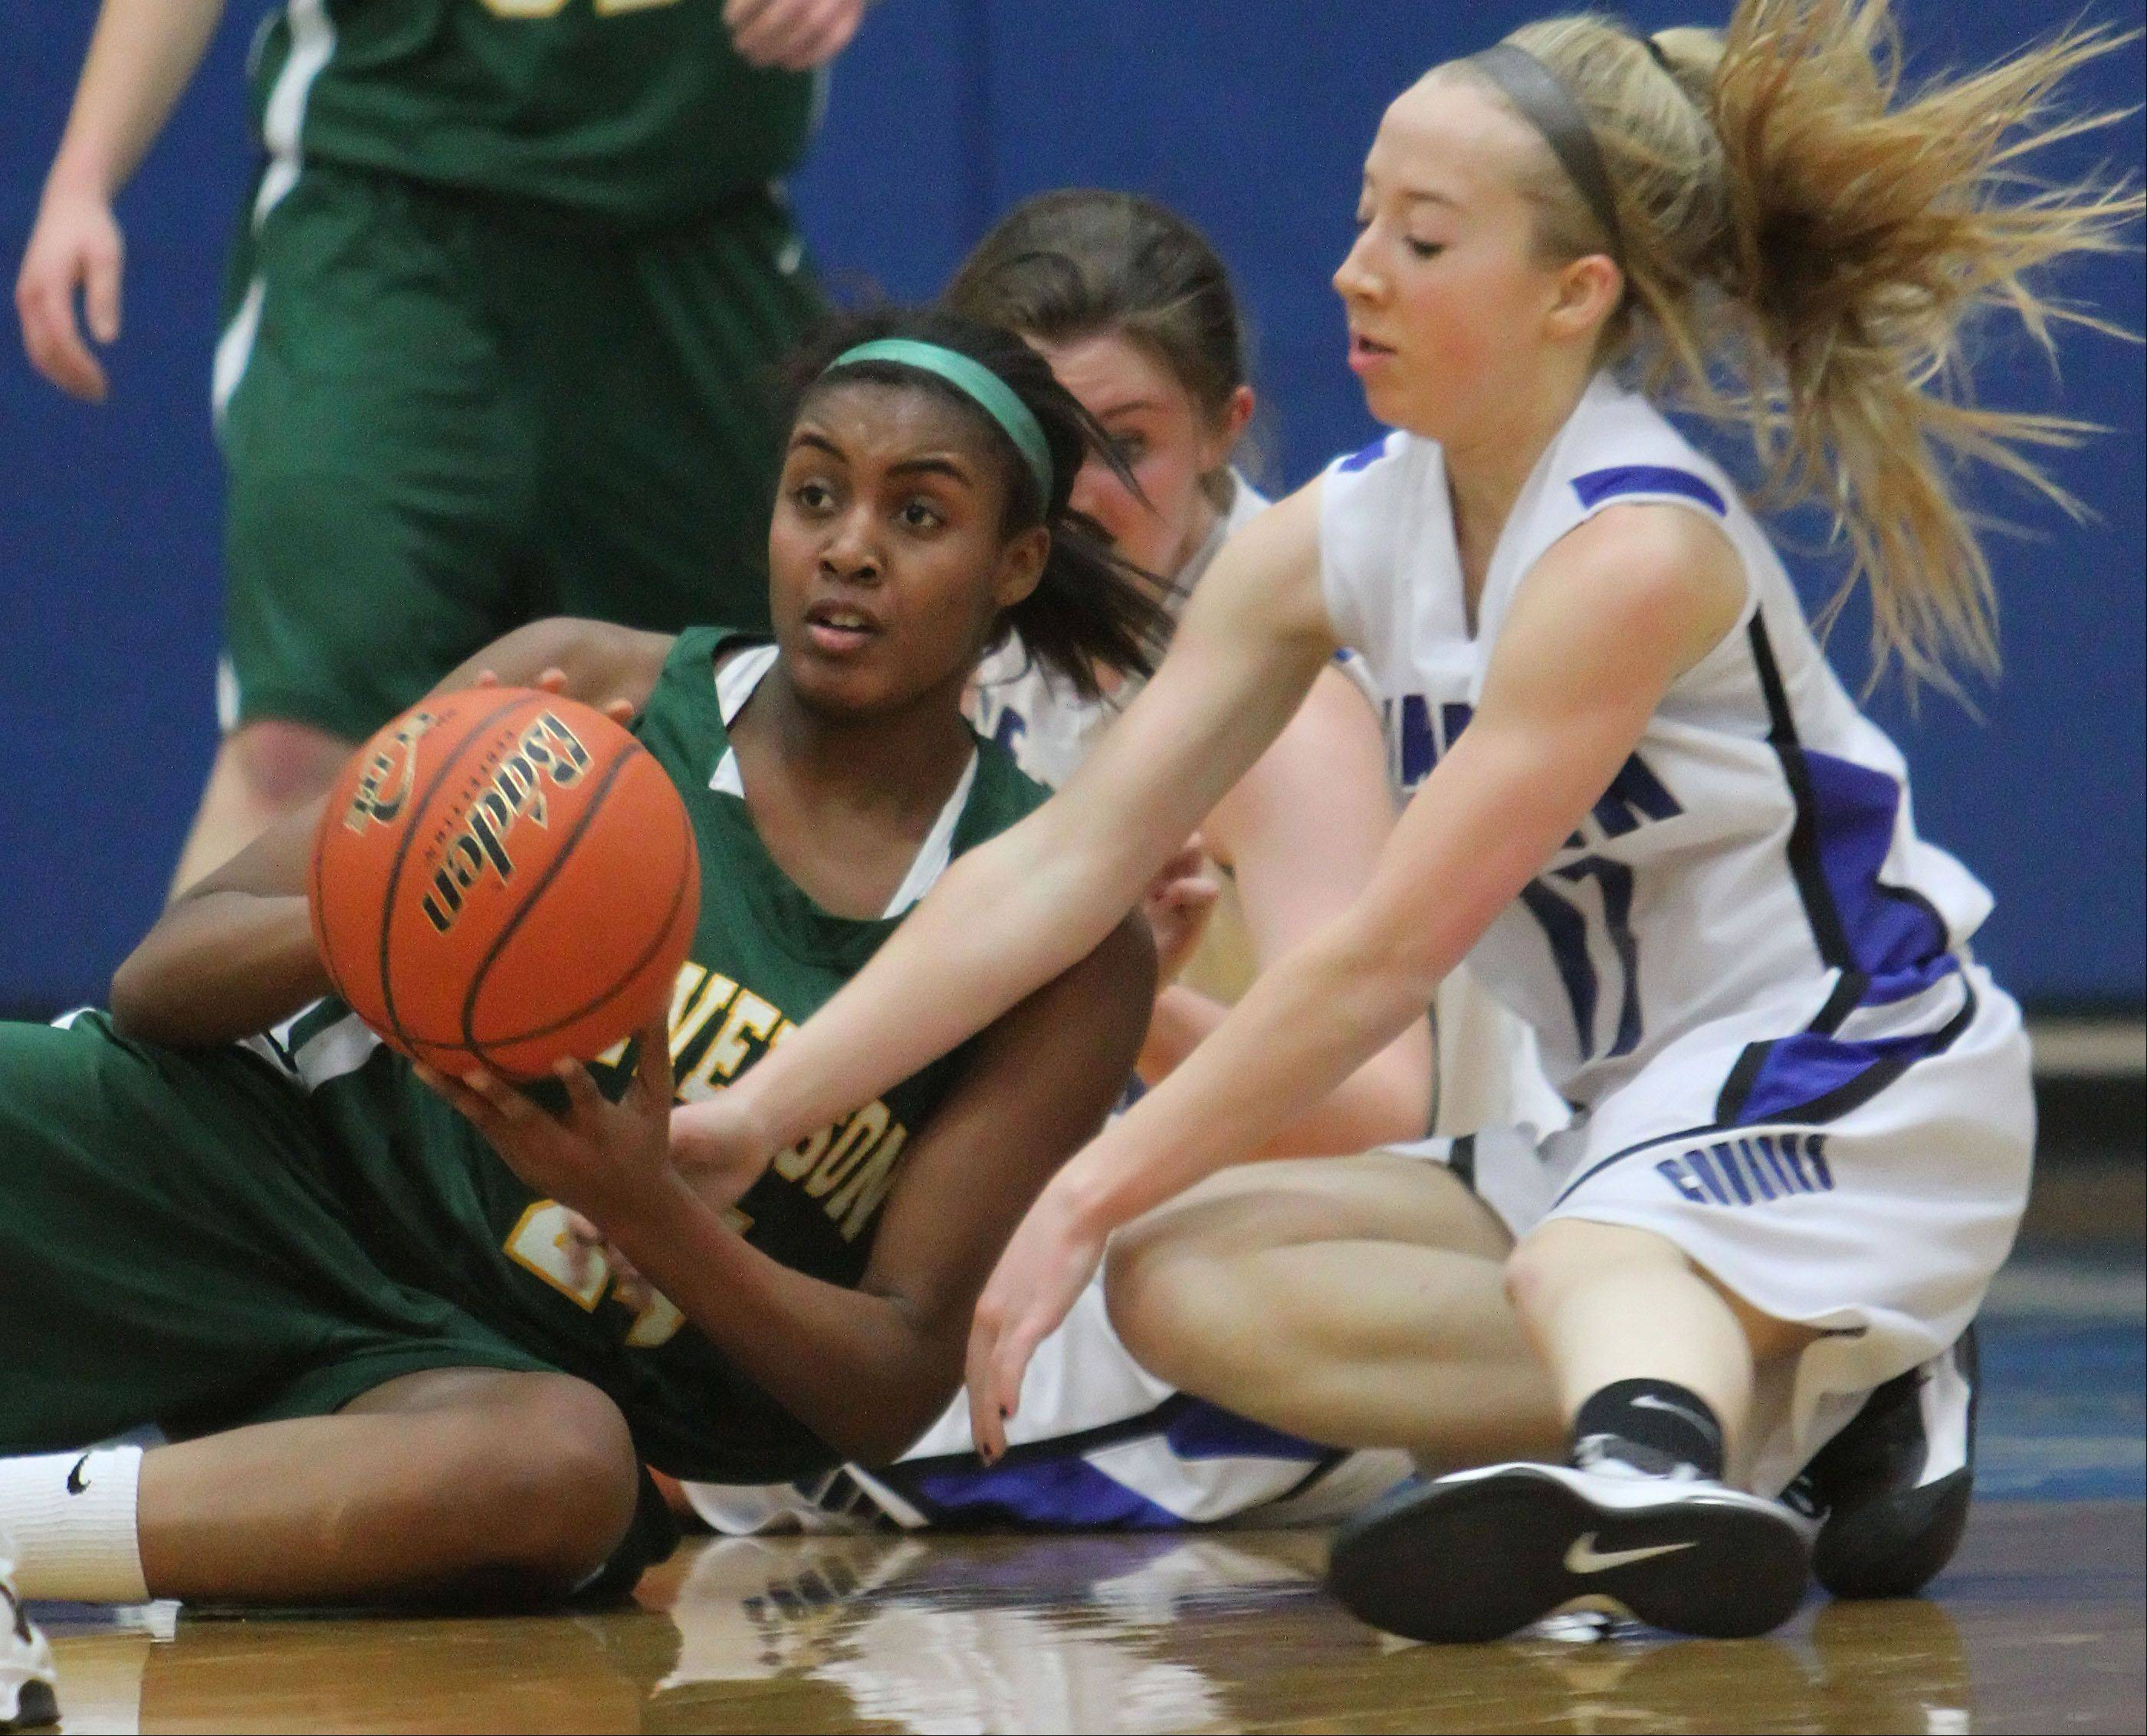 Stevenson's Taylor Buford, left, and Vernon Hills' Haley Lieberman scramble on the floor for a loose ball.